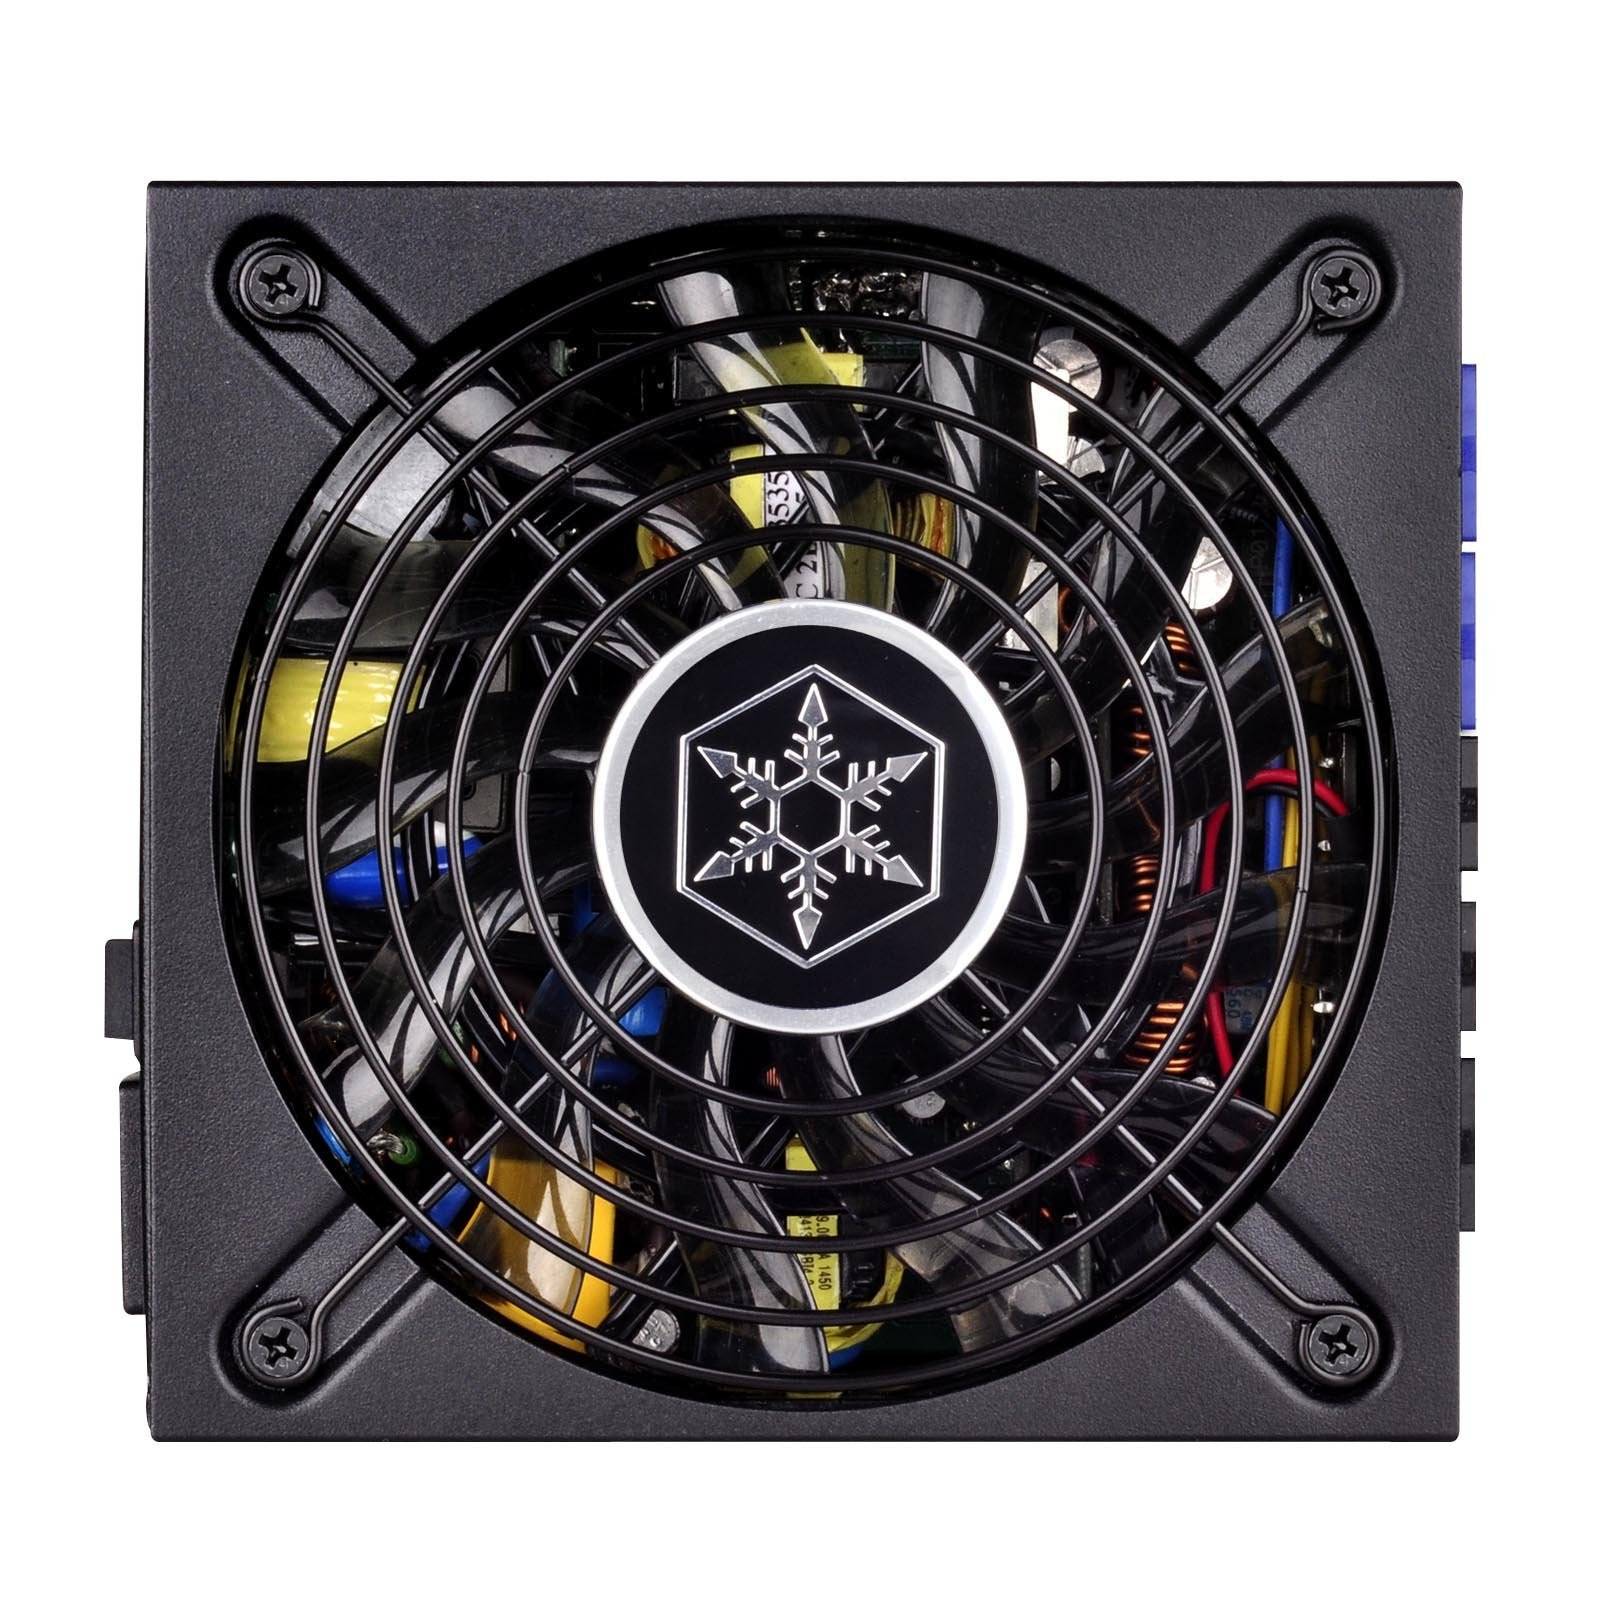 SilverStone Technology 700W,SFX-L, Silent 120mm Fan with 036Dba, Fully Modular Cable Power Supply SX700-LPT by SilverStone Technology (Image #7)